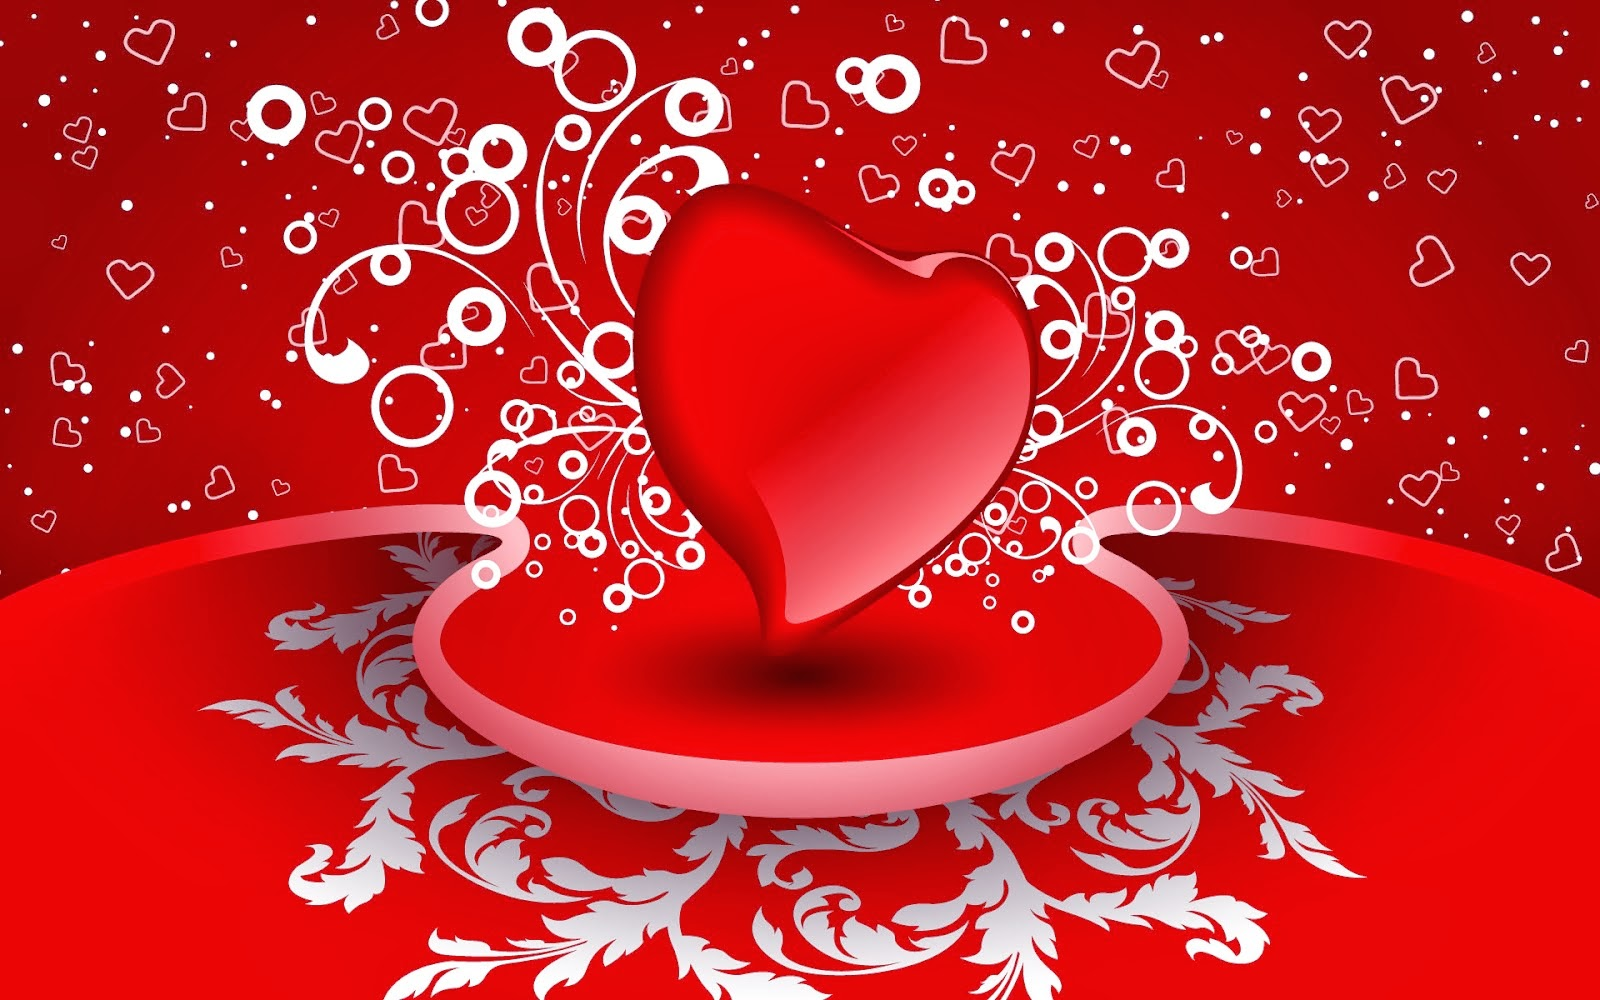 Happy Valentines Day 2014 With Flowers, Sms, Gift, Wallpapers ~ World  Celebrity U0026 Reality Show News